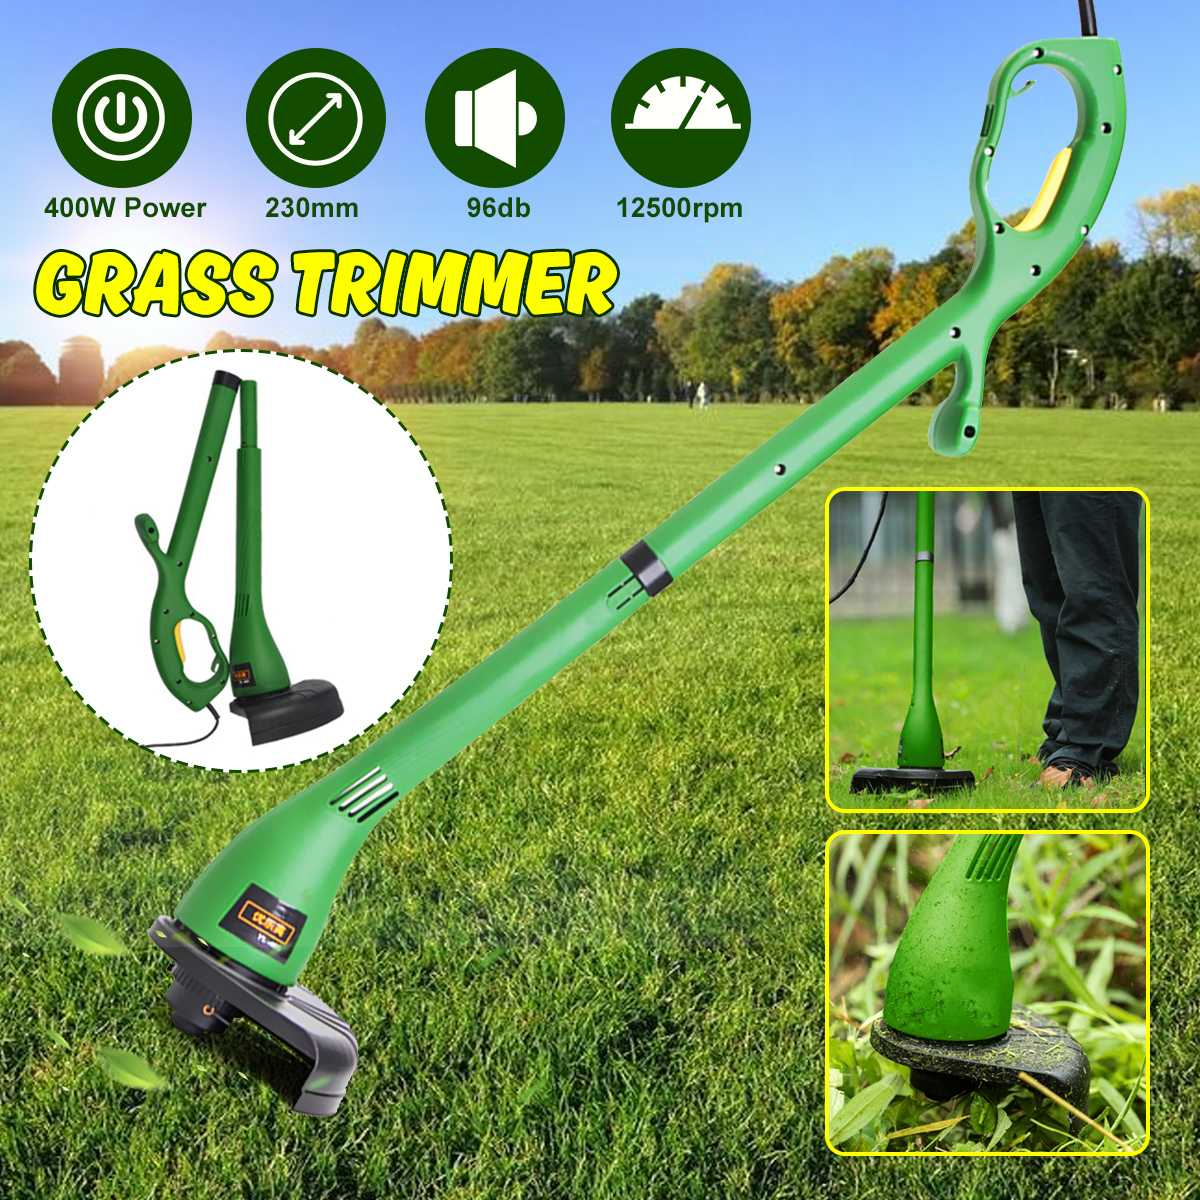 220V Home Electric Lawn Mower Portable 500W Grass Trimmer Garden Lawn Mower Weeding Machine 12500RPM